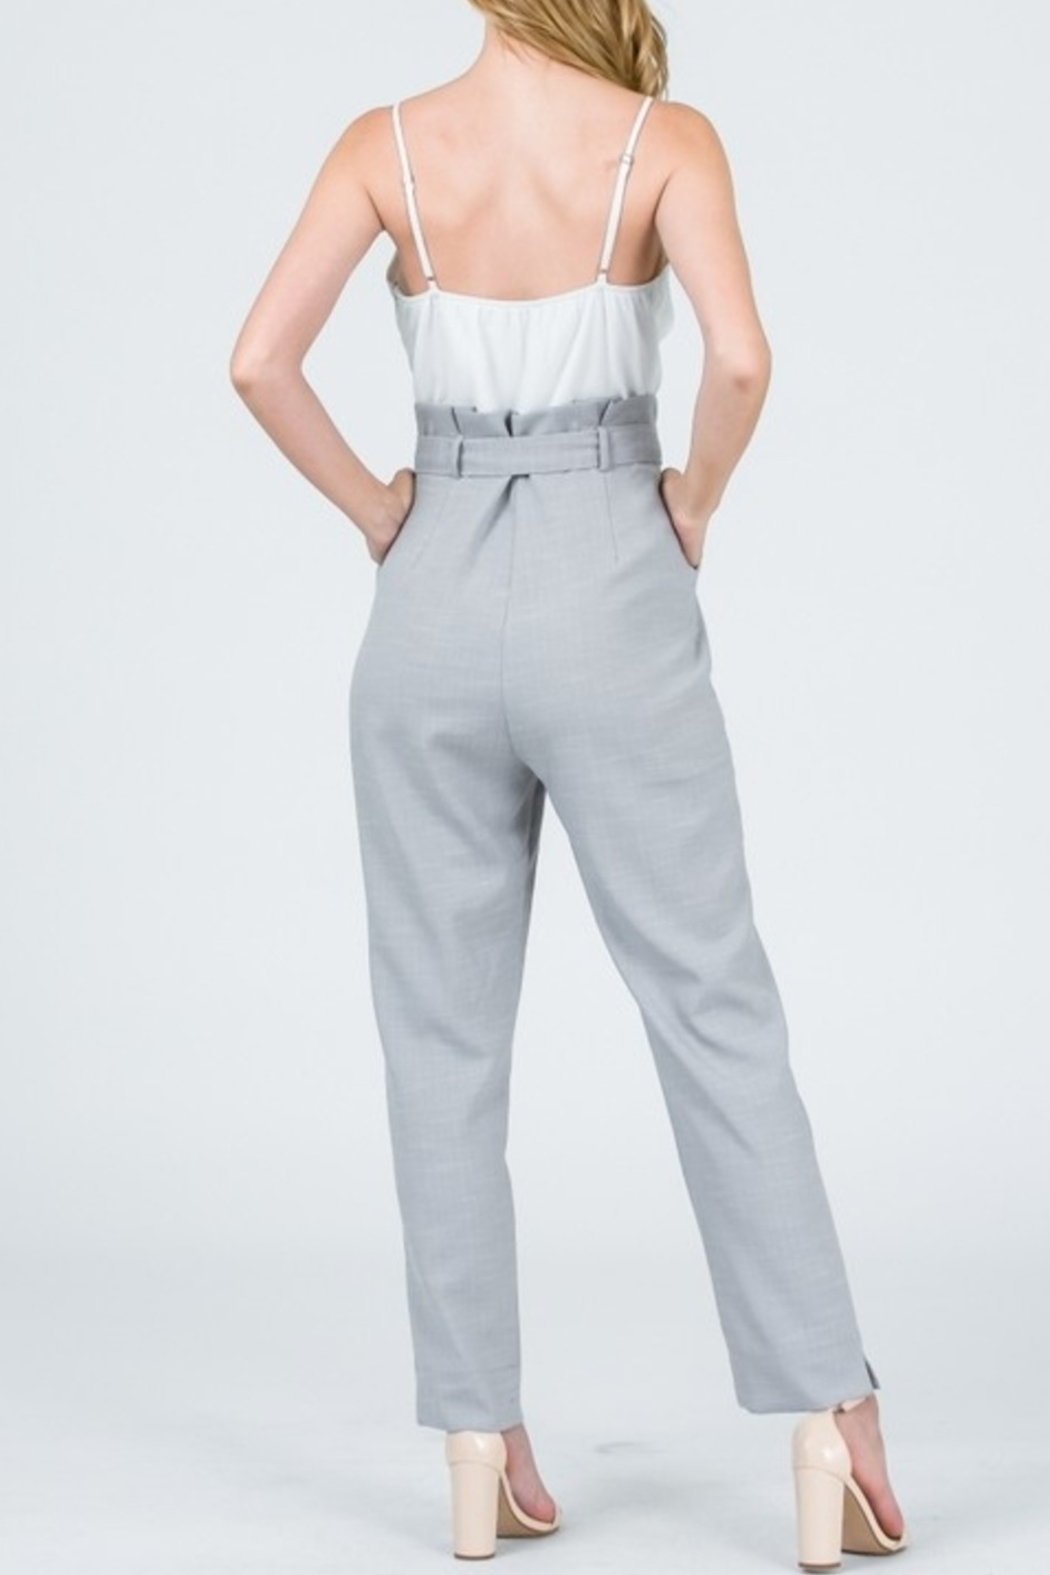 &merci Tied & Tailored Jumpsuit - Front Full Image